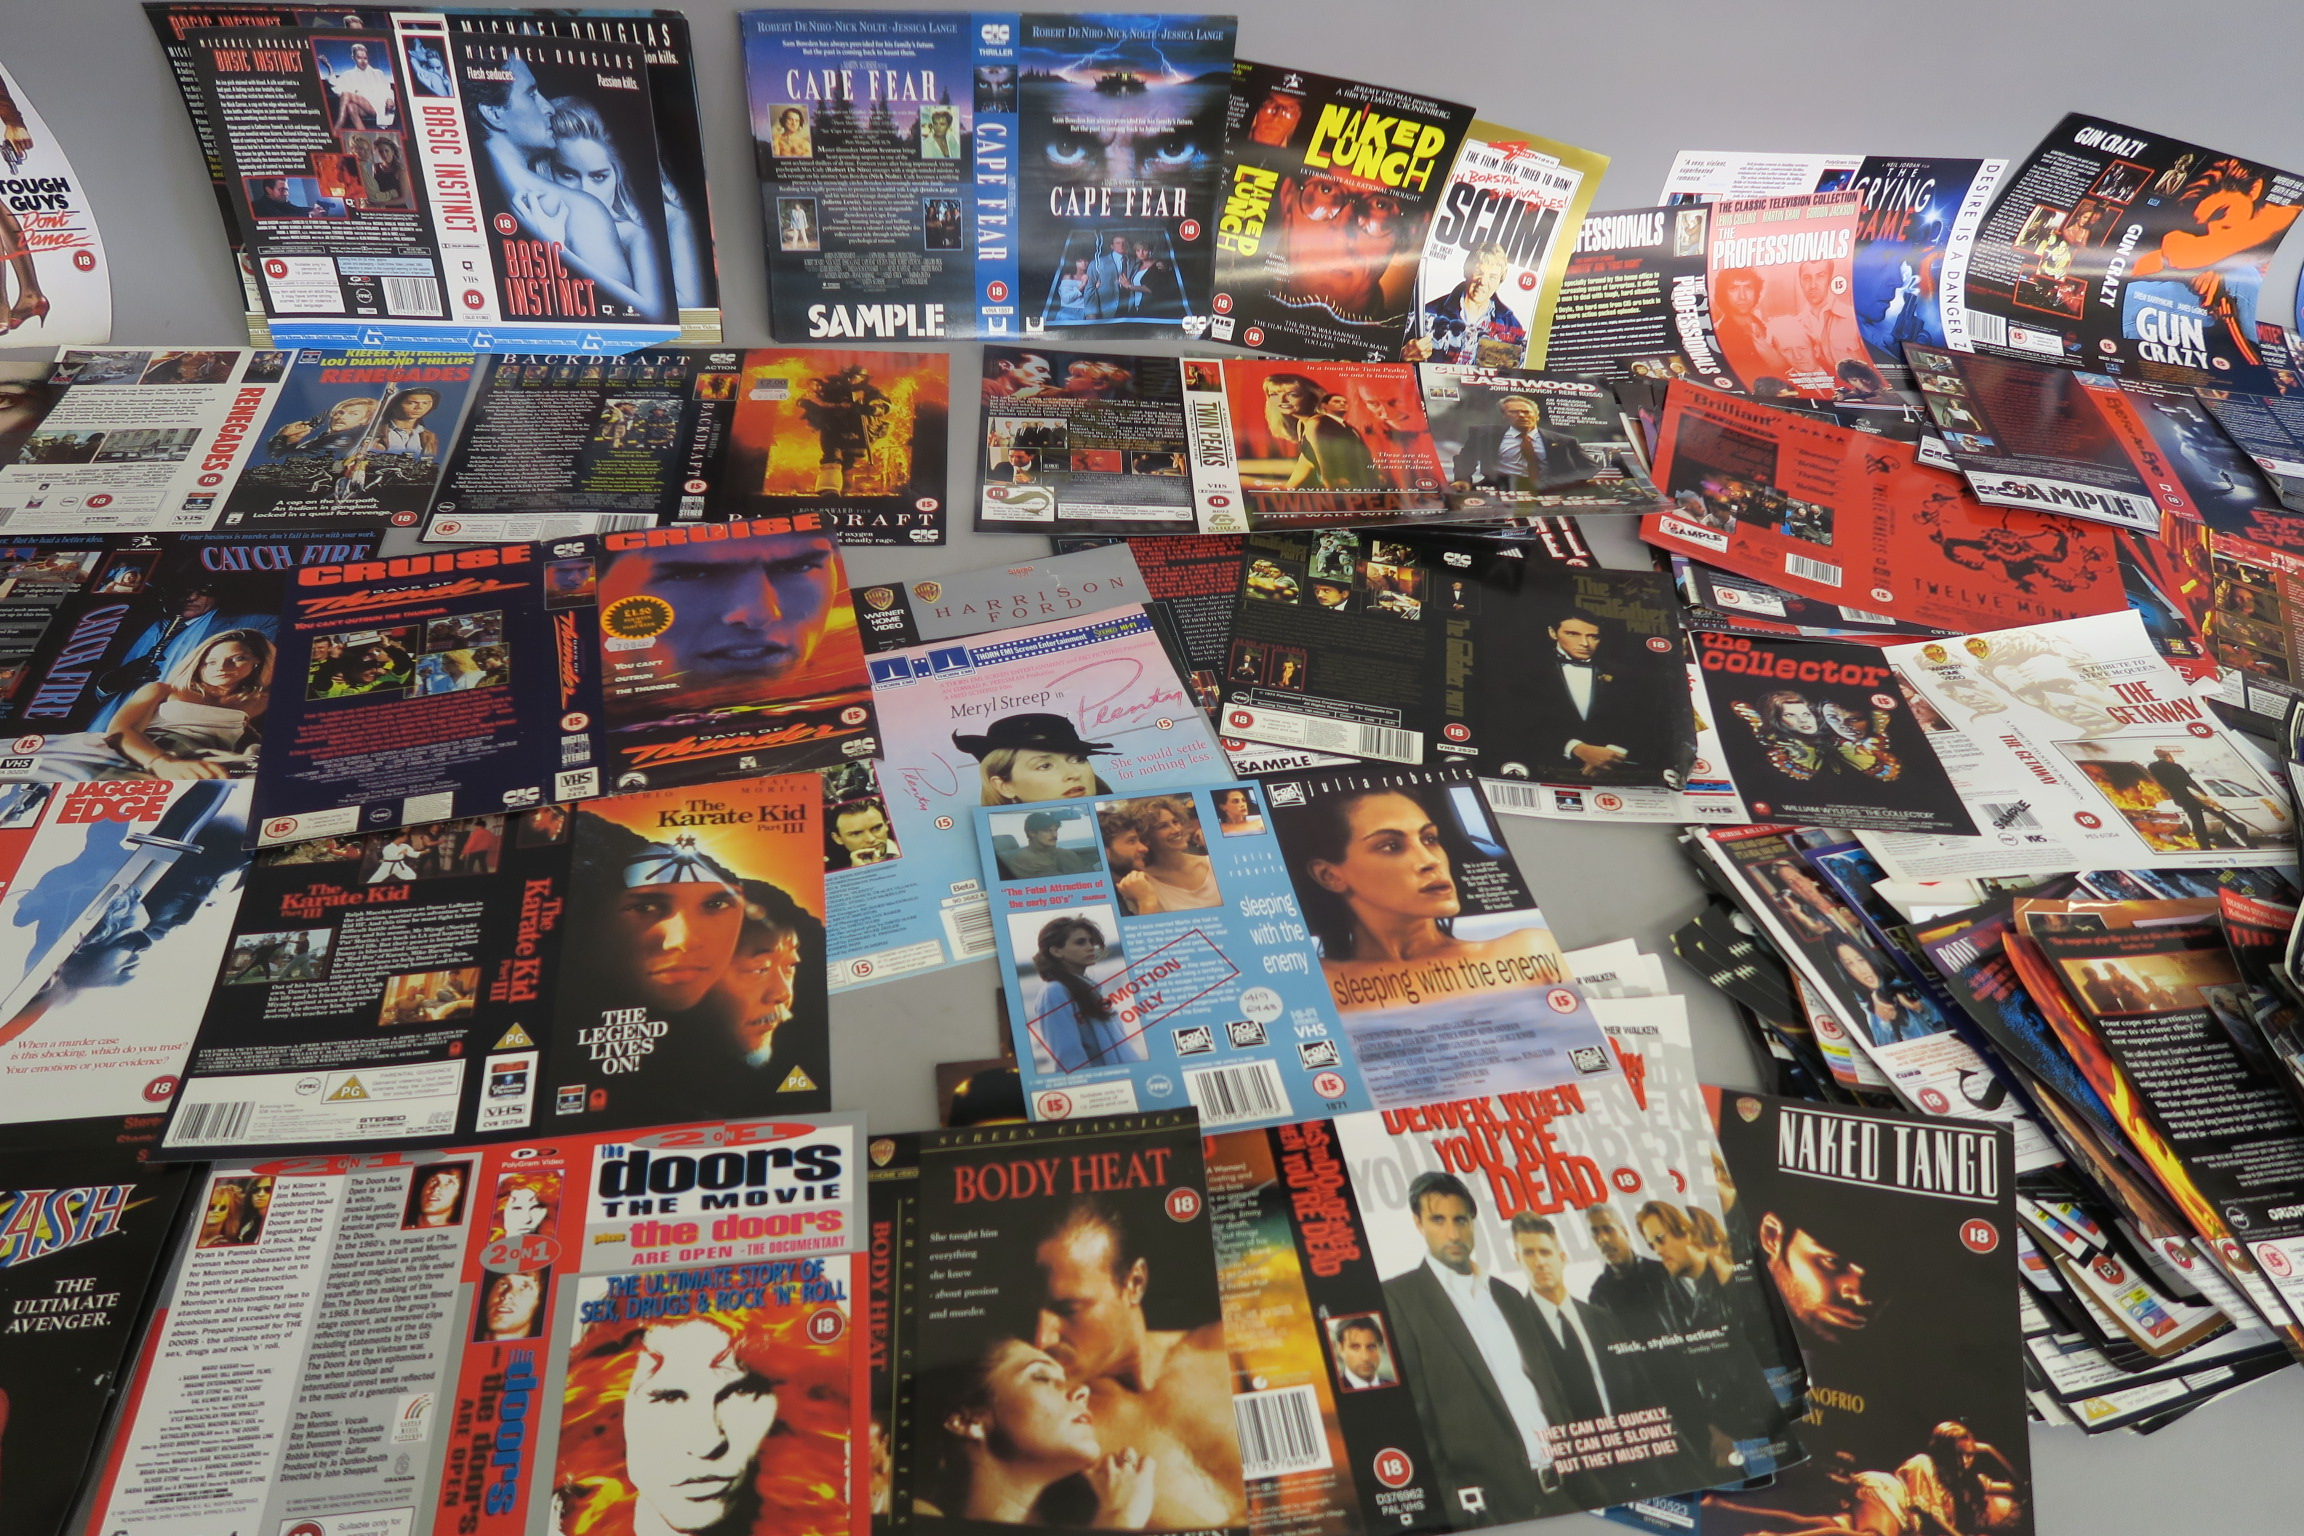 Lot 38 - Collection of thriller genre video sleeves from a closed video shop. Titles include True Romance,